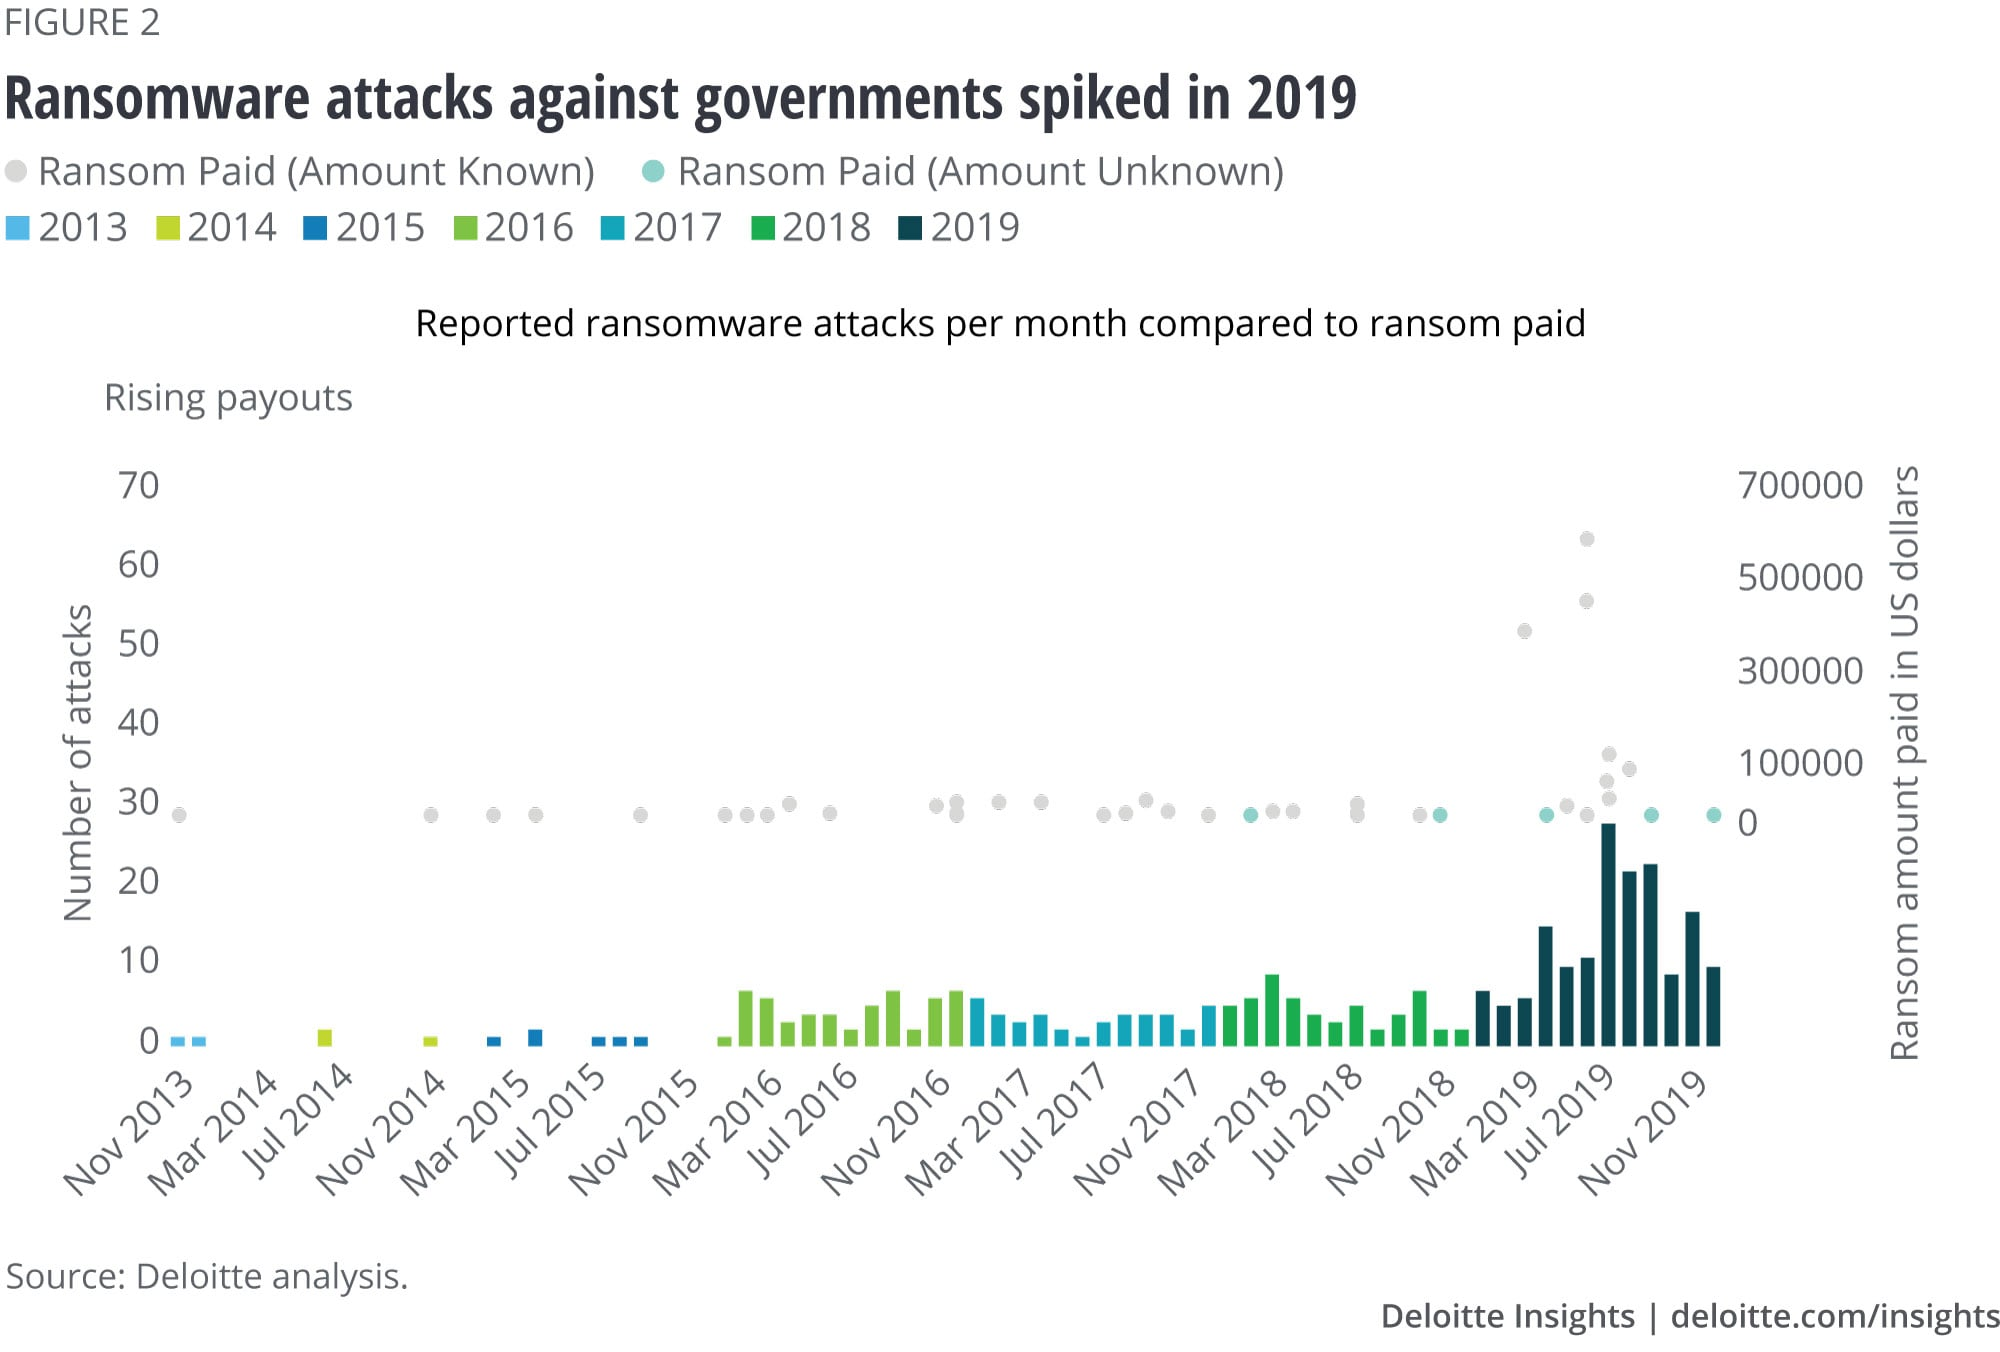 Ransomware attacks against governments spiked in 2019